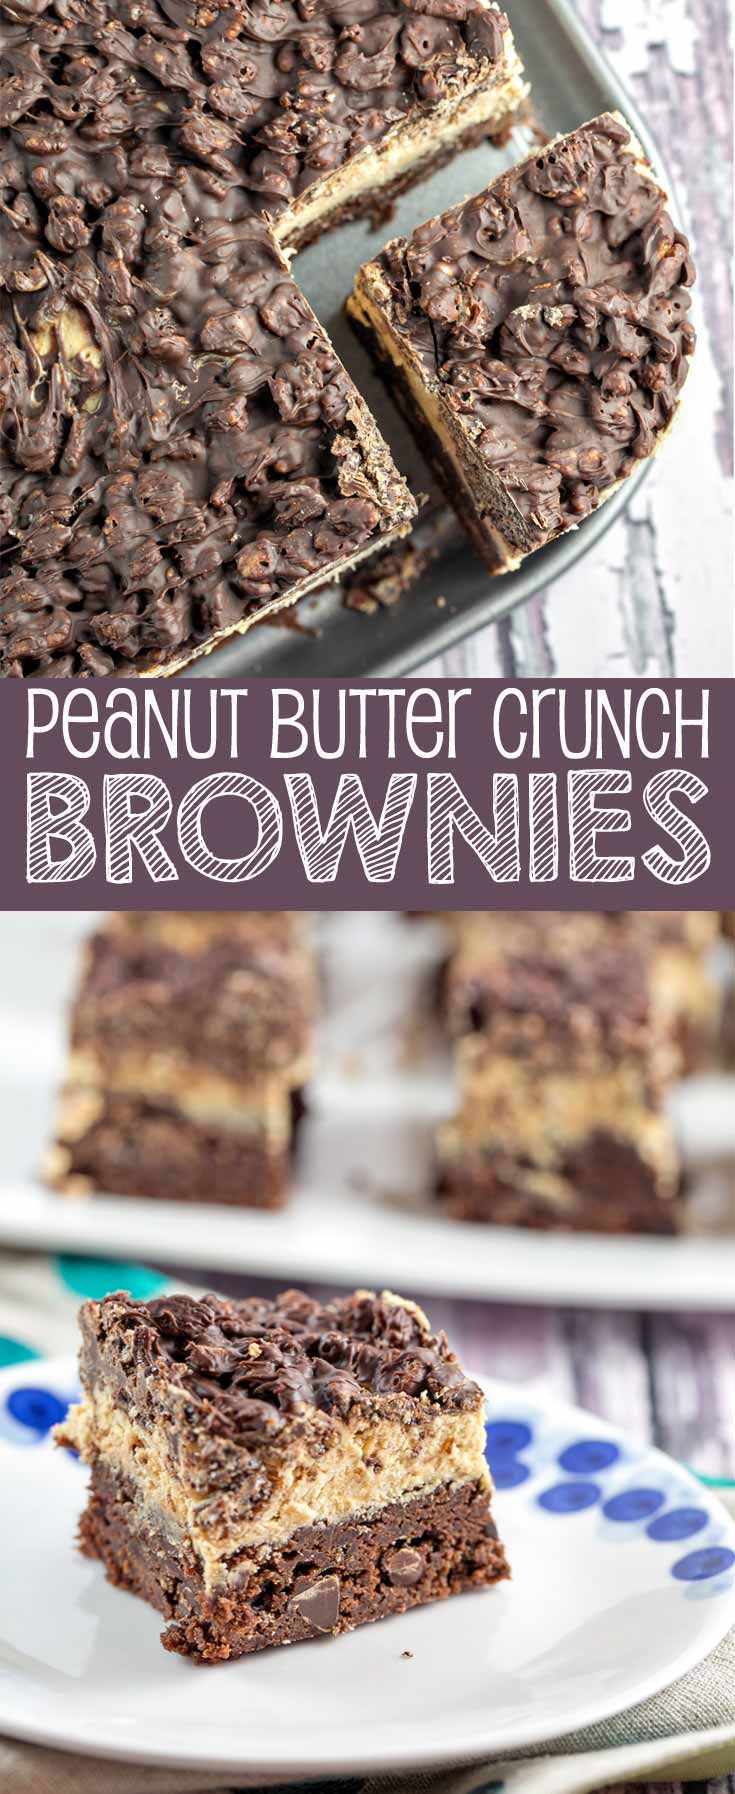 Peanut Butter Crunch Brownies: homemade brownies, peanut butter ganache frosting, and a Rice Krispie chocolate crunch layer - the perfect make-ahead party treat! {Bunsen Burner Bakery}